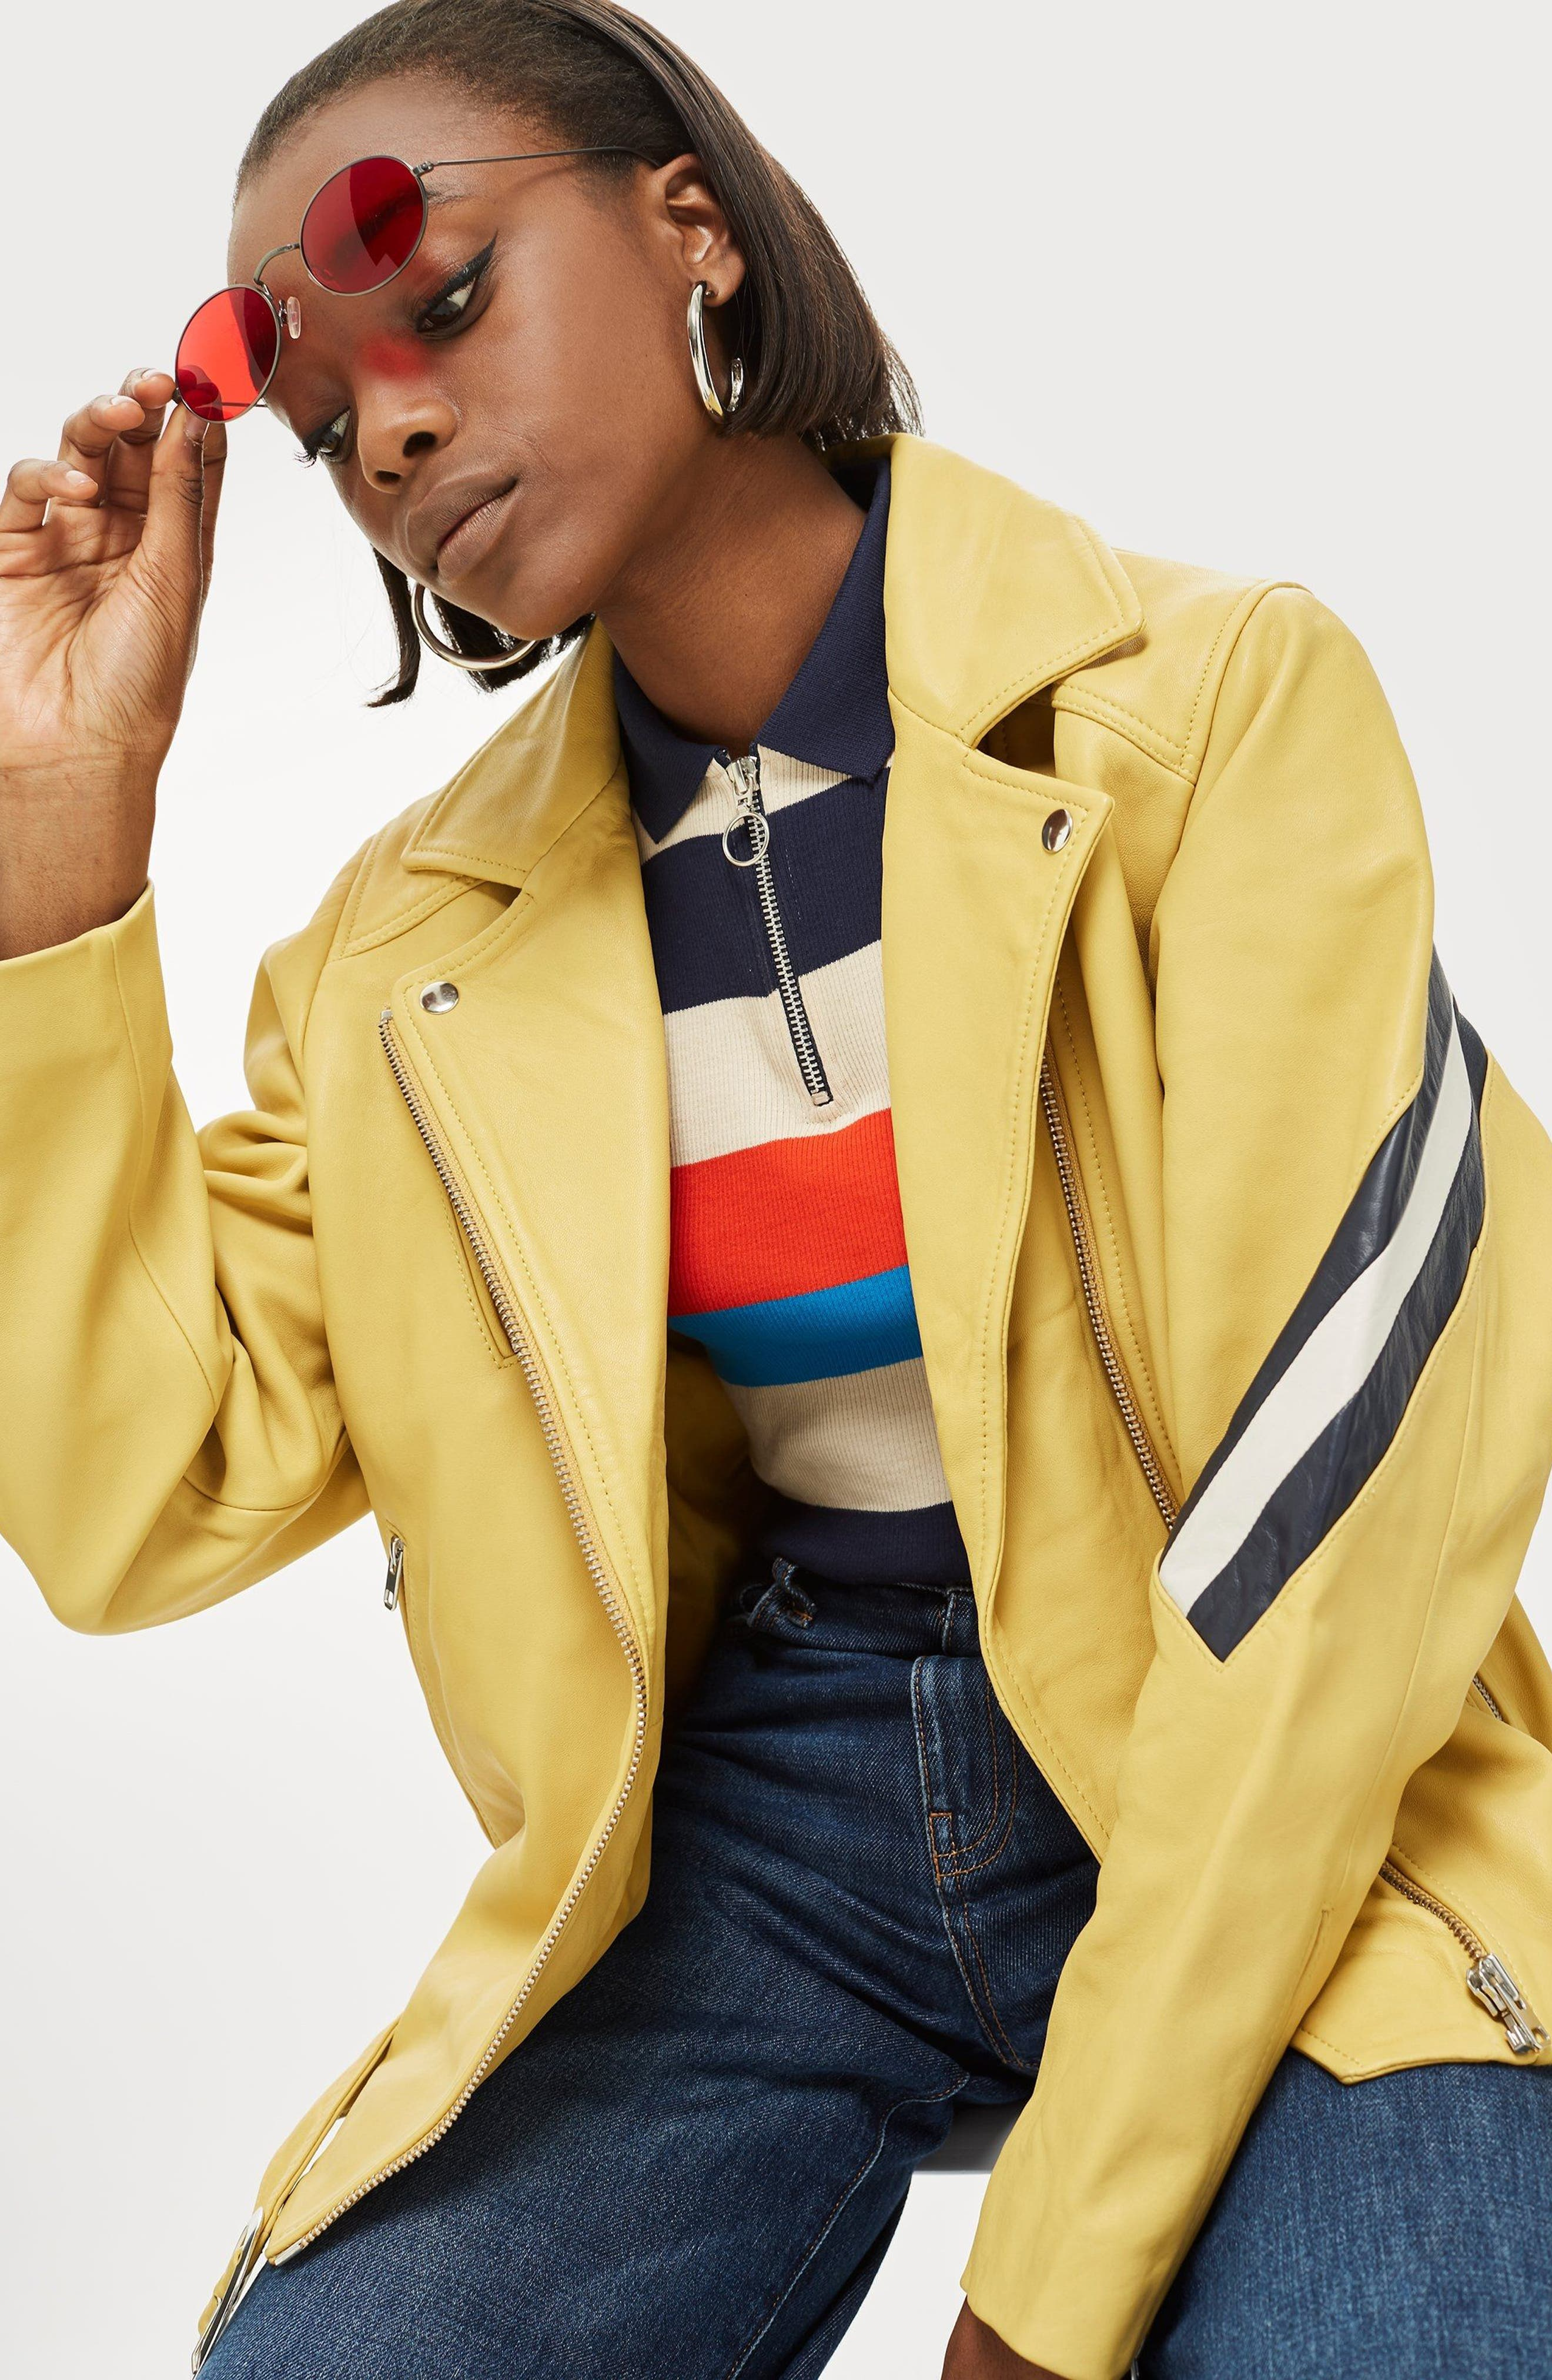 Strobe Leather Jacket,                             Alternate thumbnail 2, color,                             Yellow Multi